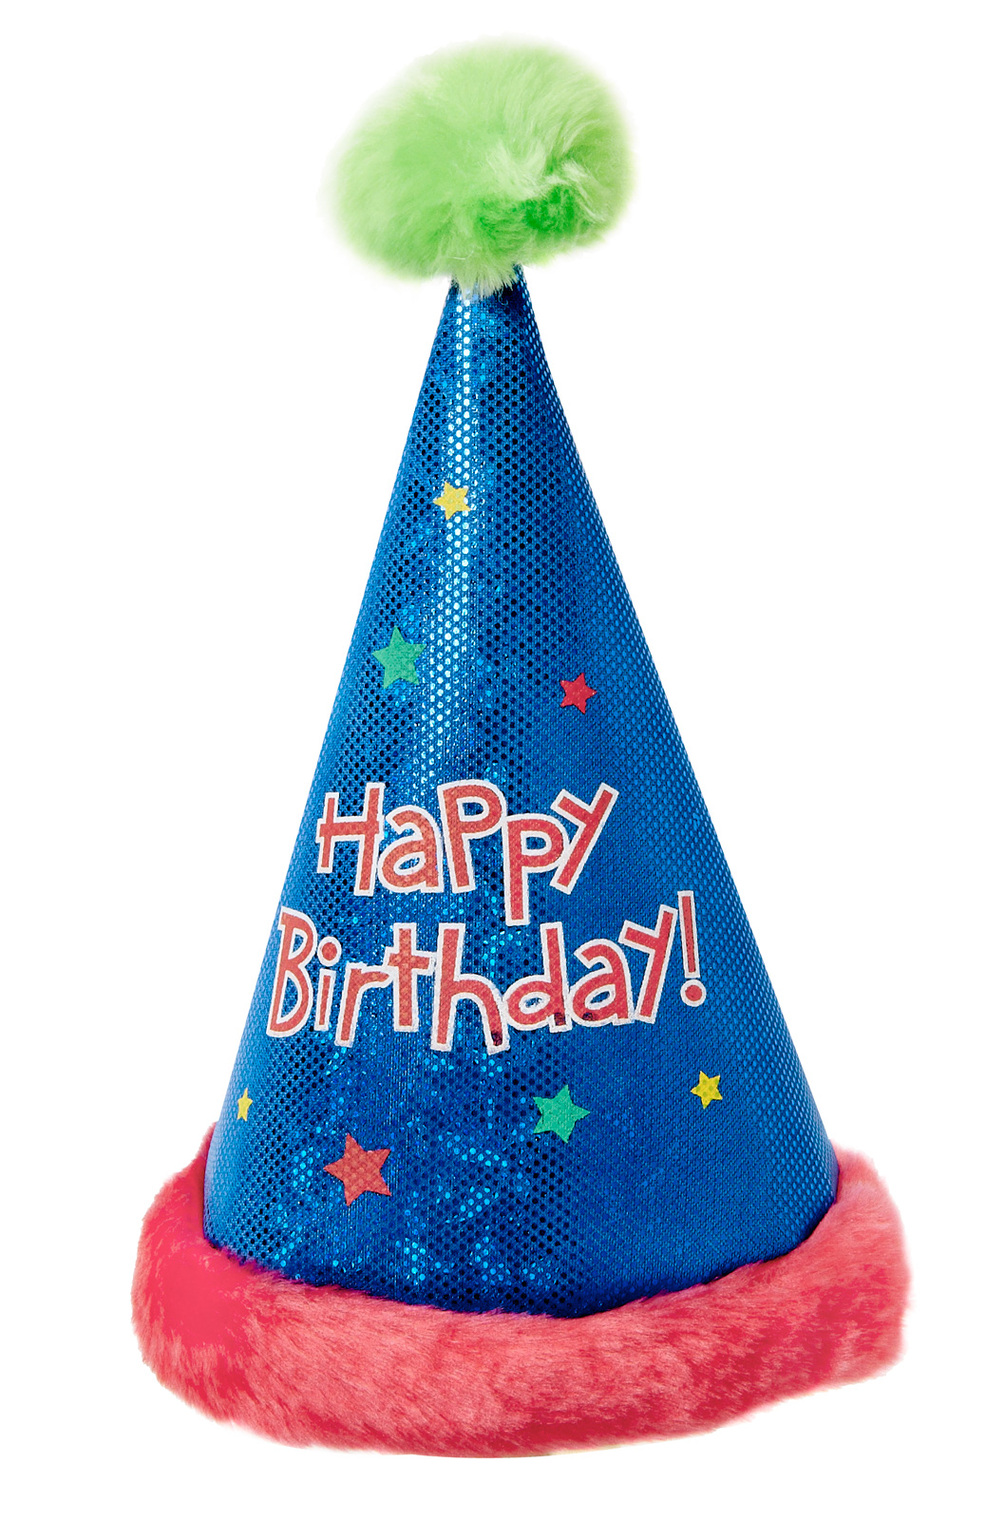 Birthday hat images clipart free to use clip art resource 2